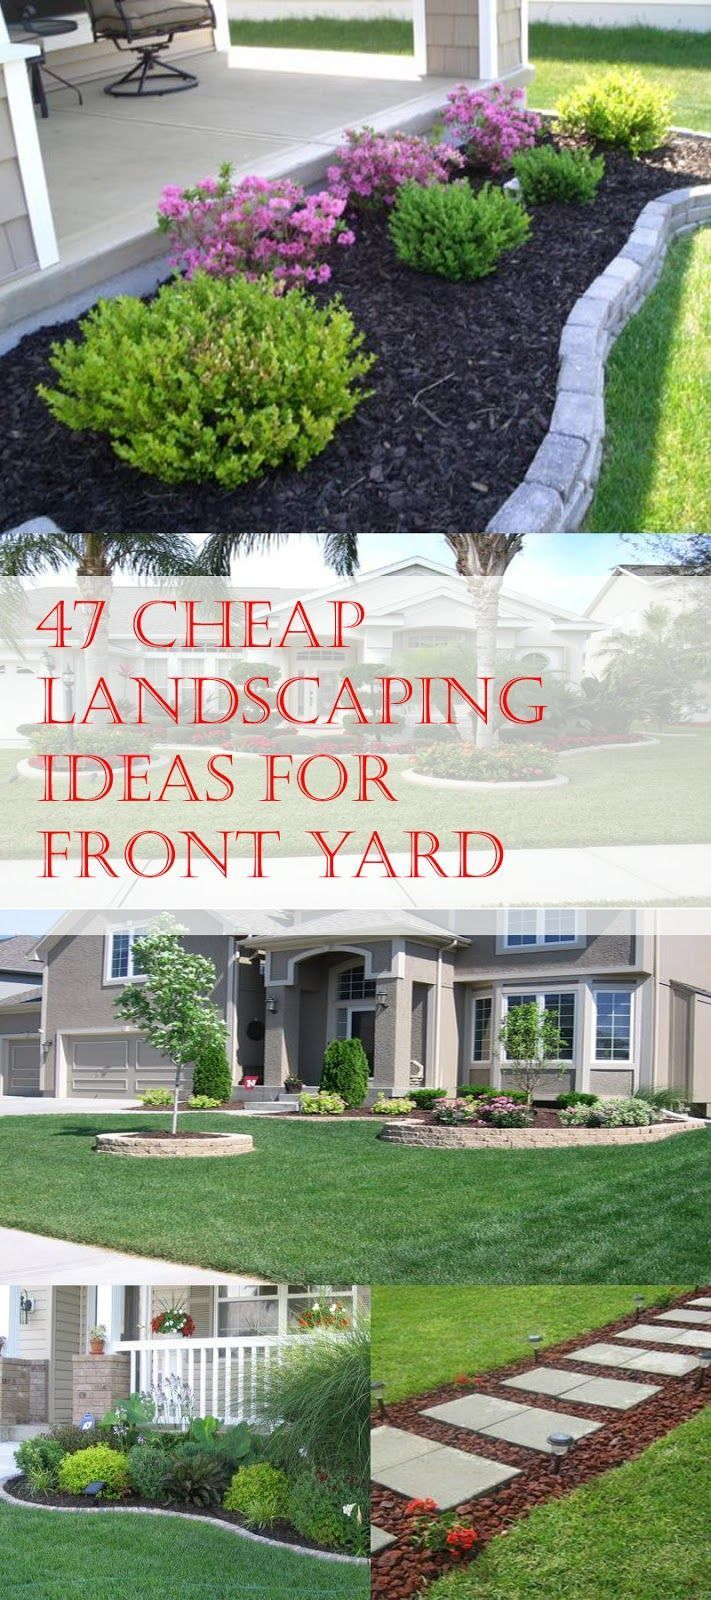 47 Cheap Landscaping Ideas For Front Yard Cheap Landscaping